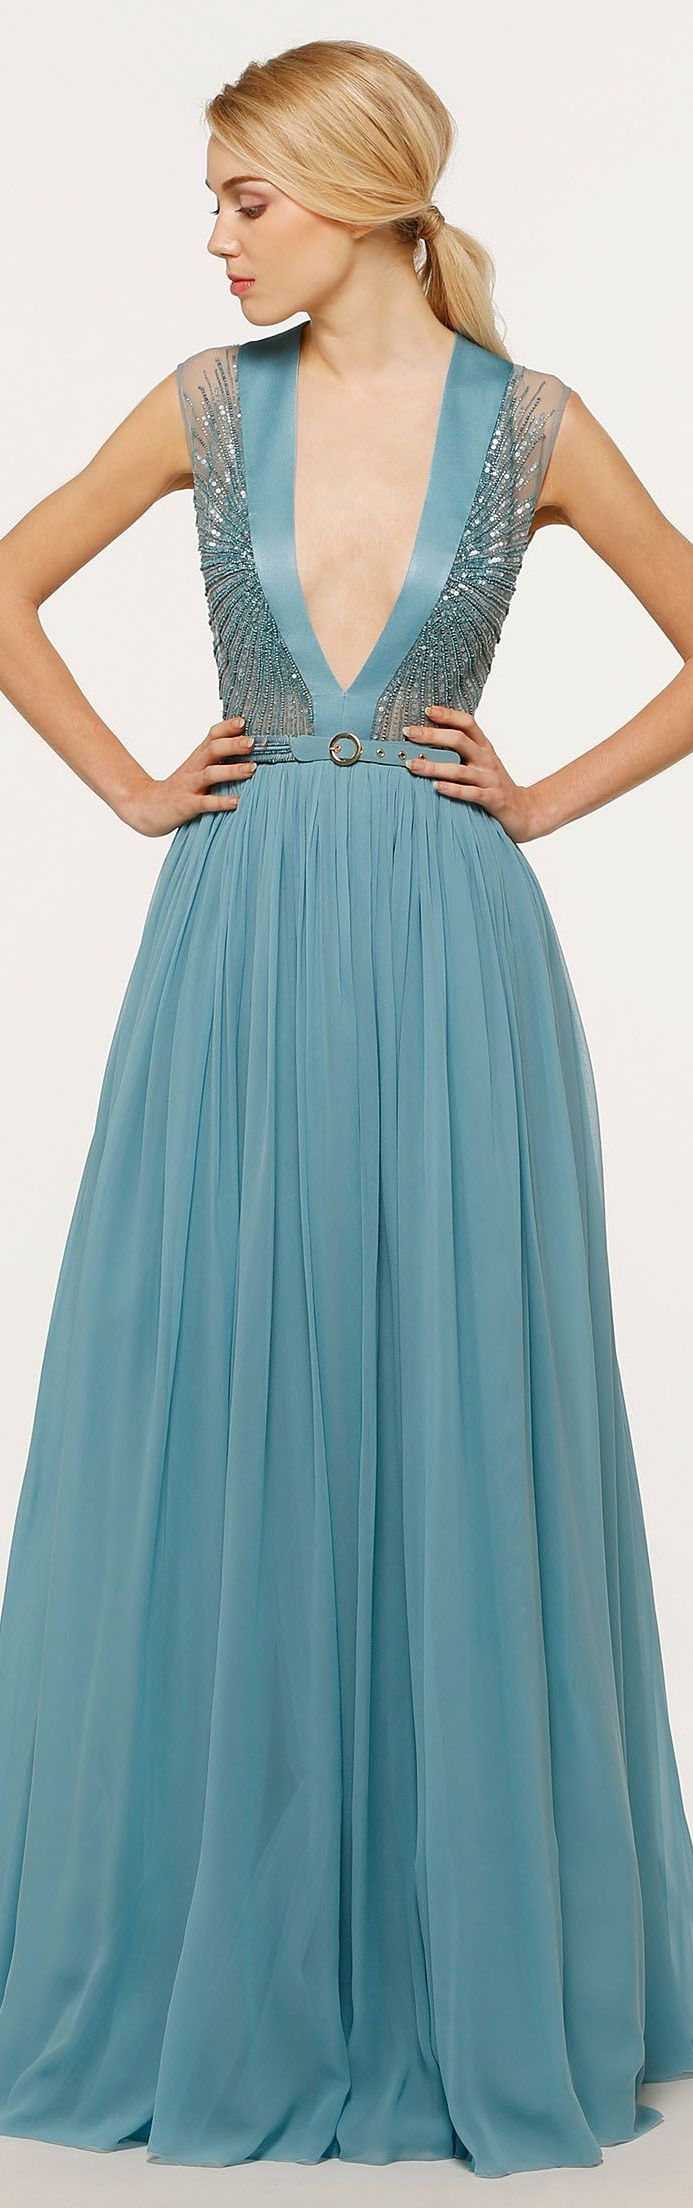 112 best Fashion - Georges Hobeika images on Pinterest | Georges ...